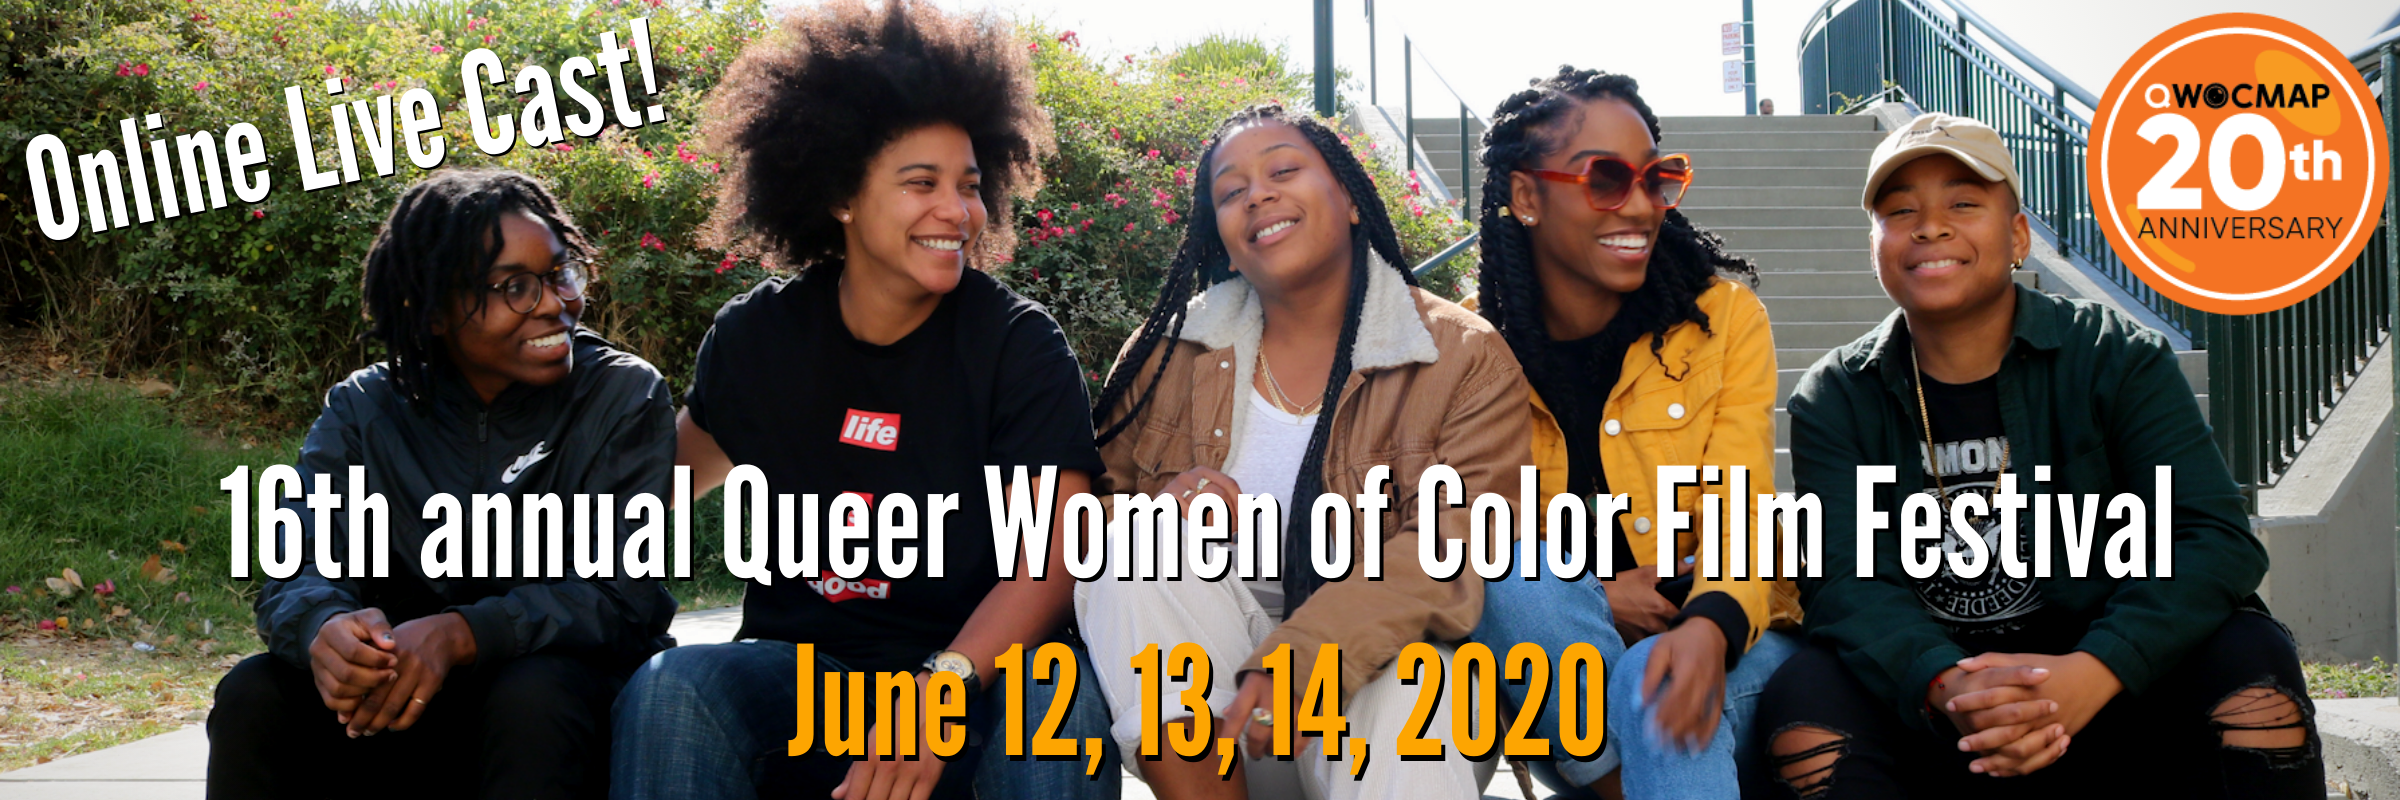 A group of 5 Black women with dark brown skin and medium brown skin sit on a concrete wall, smiling and laughing while looking at each other and straight ahead. n the background, there is grass and green bushes with pink flowers on the left, and concrete stairs with green poles and railings on the right. In the middle, white and yellow text reads 16th annual Queer Women of Color Film Festival June 12, 13, 14, 2020. In the upper left, white text reads Online Live Cast! In the upper right, an orange circle with the QWOCMAP logo and white text reads 20th anniversary.